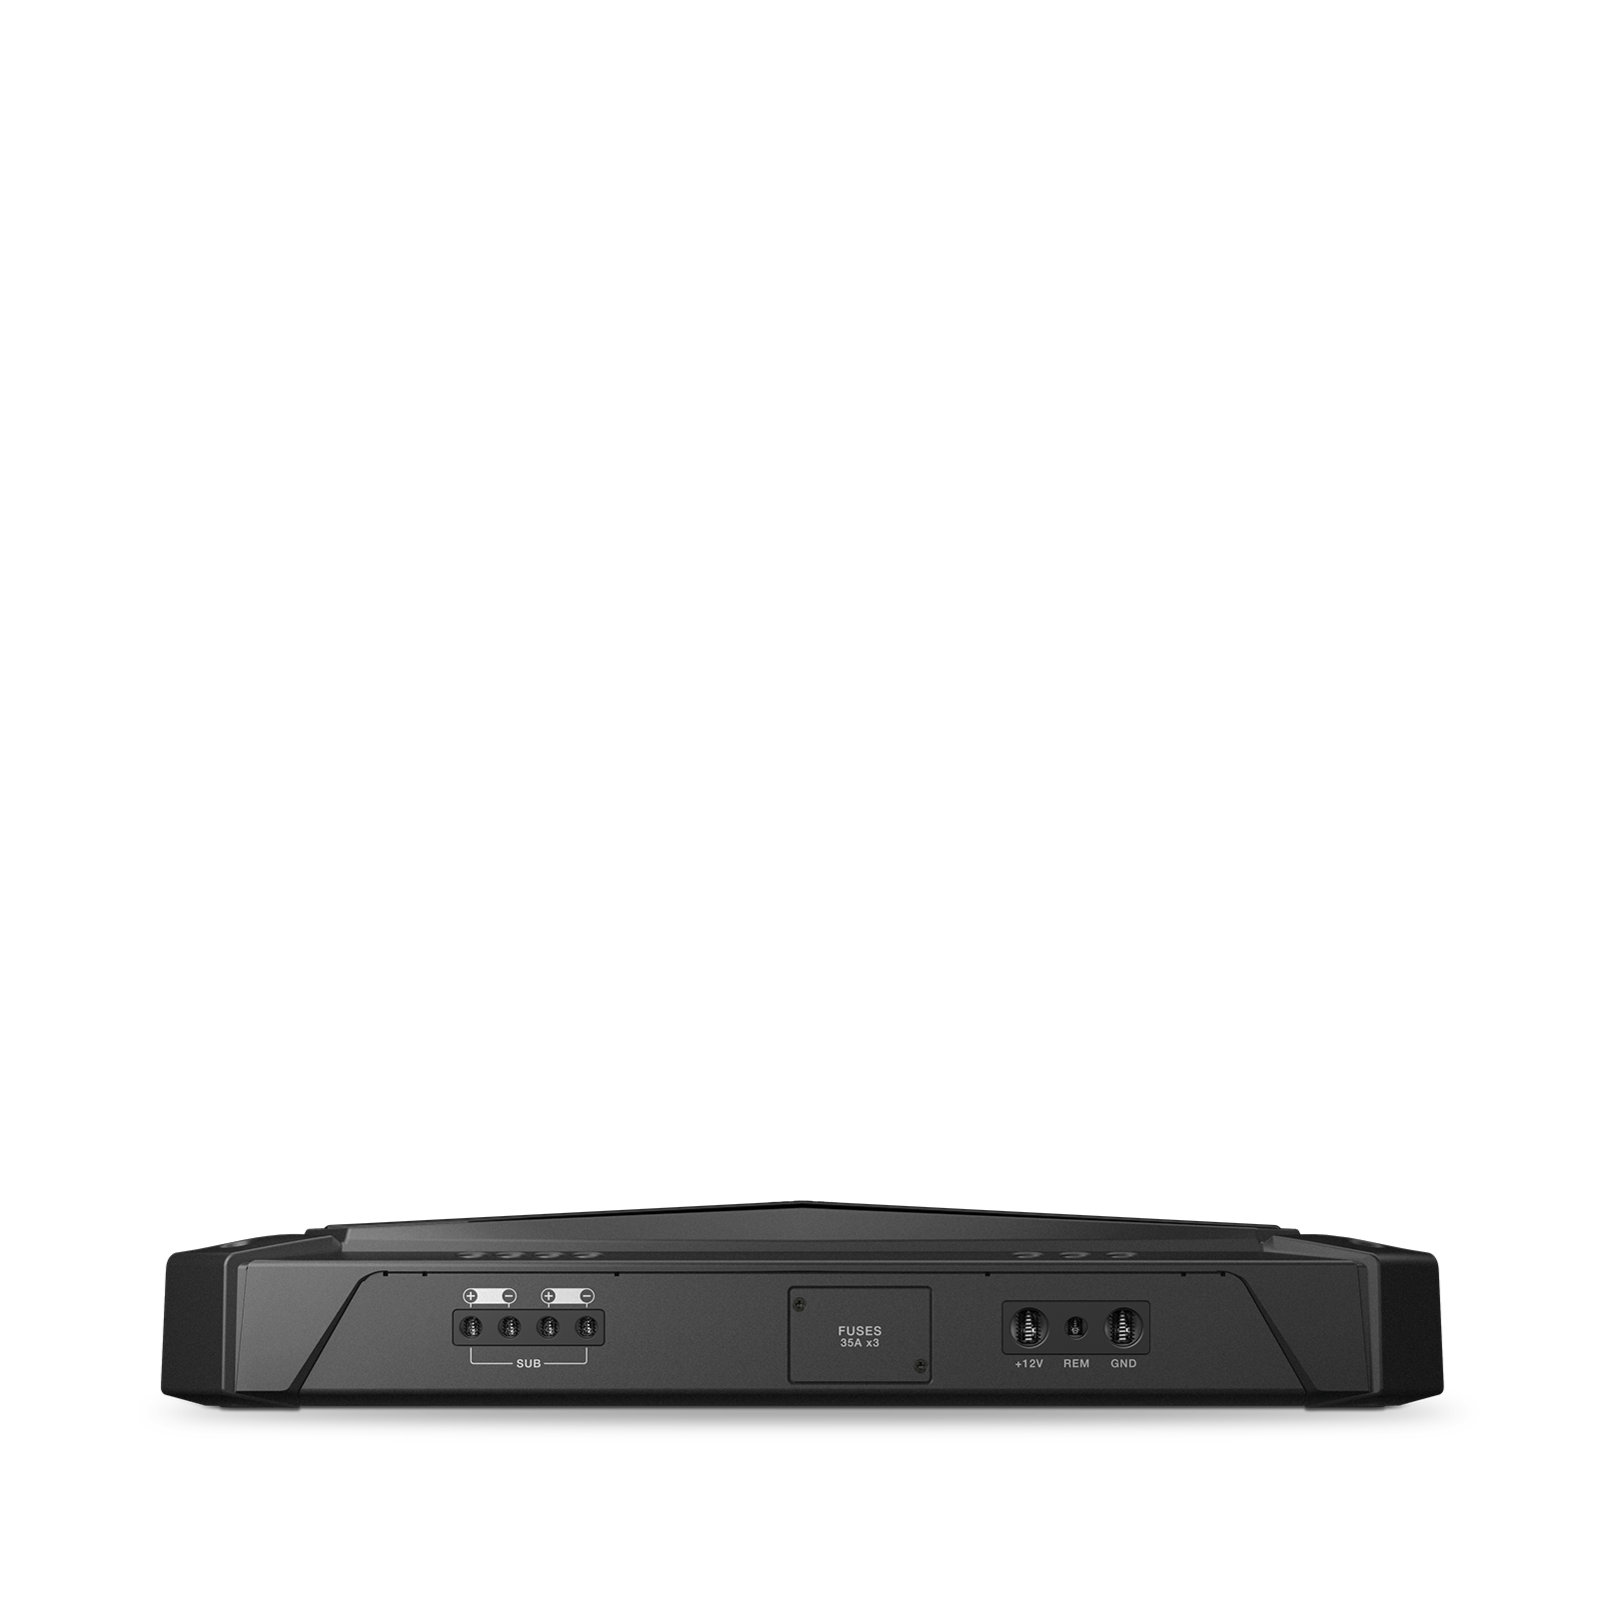 GTR-1001 - Black - Mono Channel, 2600W High Performance Subwoofer Amplifier - Detailshot 1